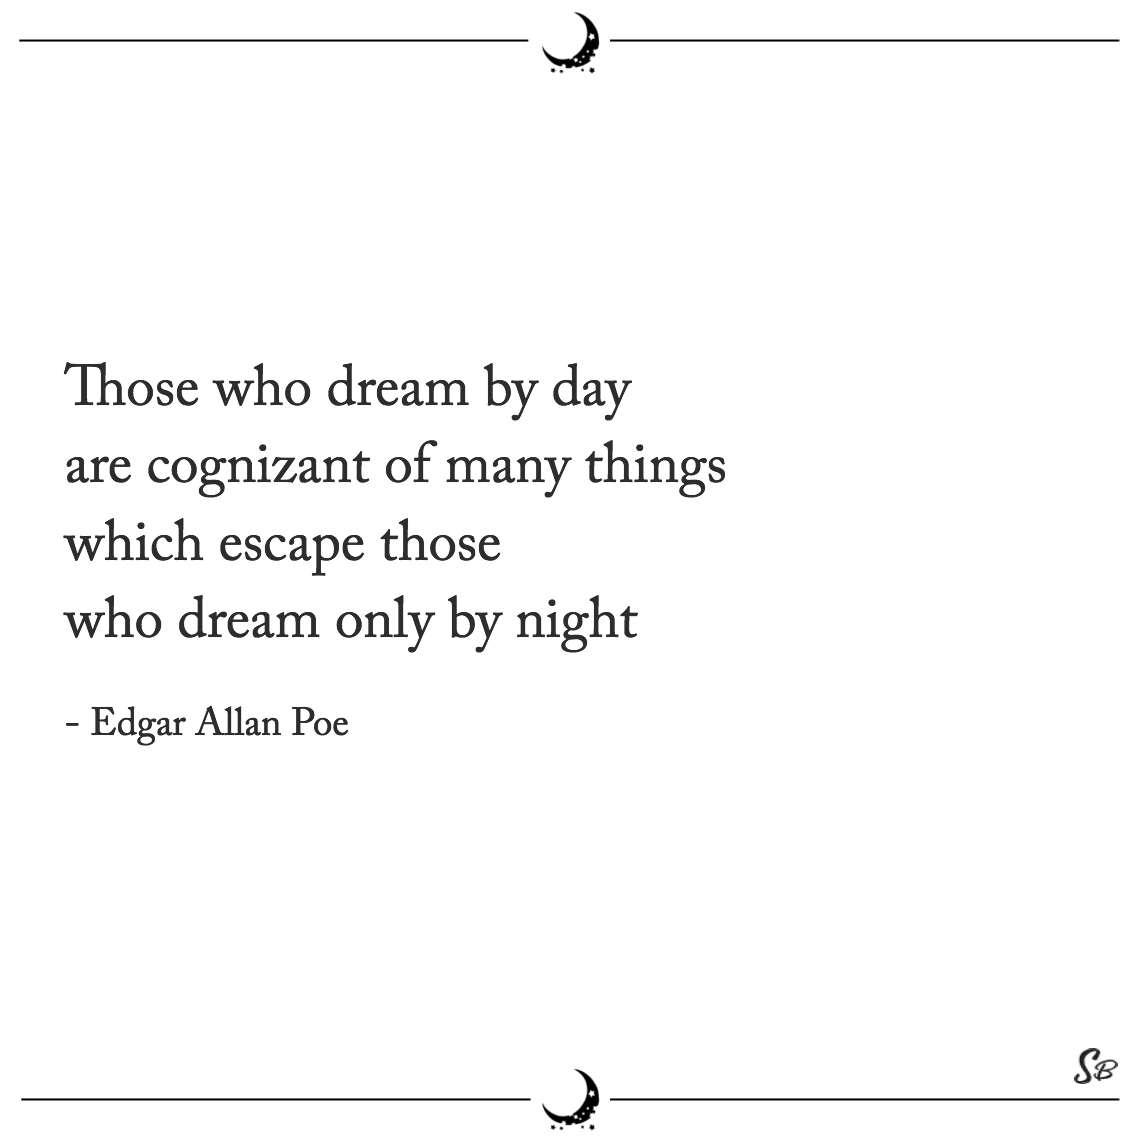 Those who dream by day are cognizant of many things which escape those who dream only by night edgar allan poe